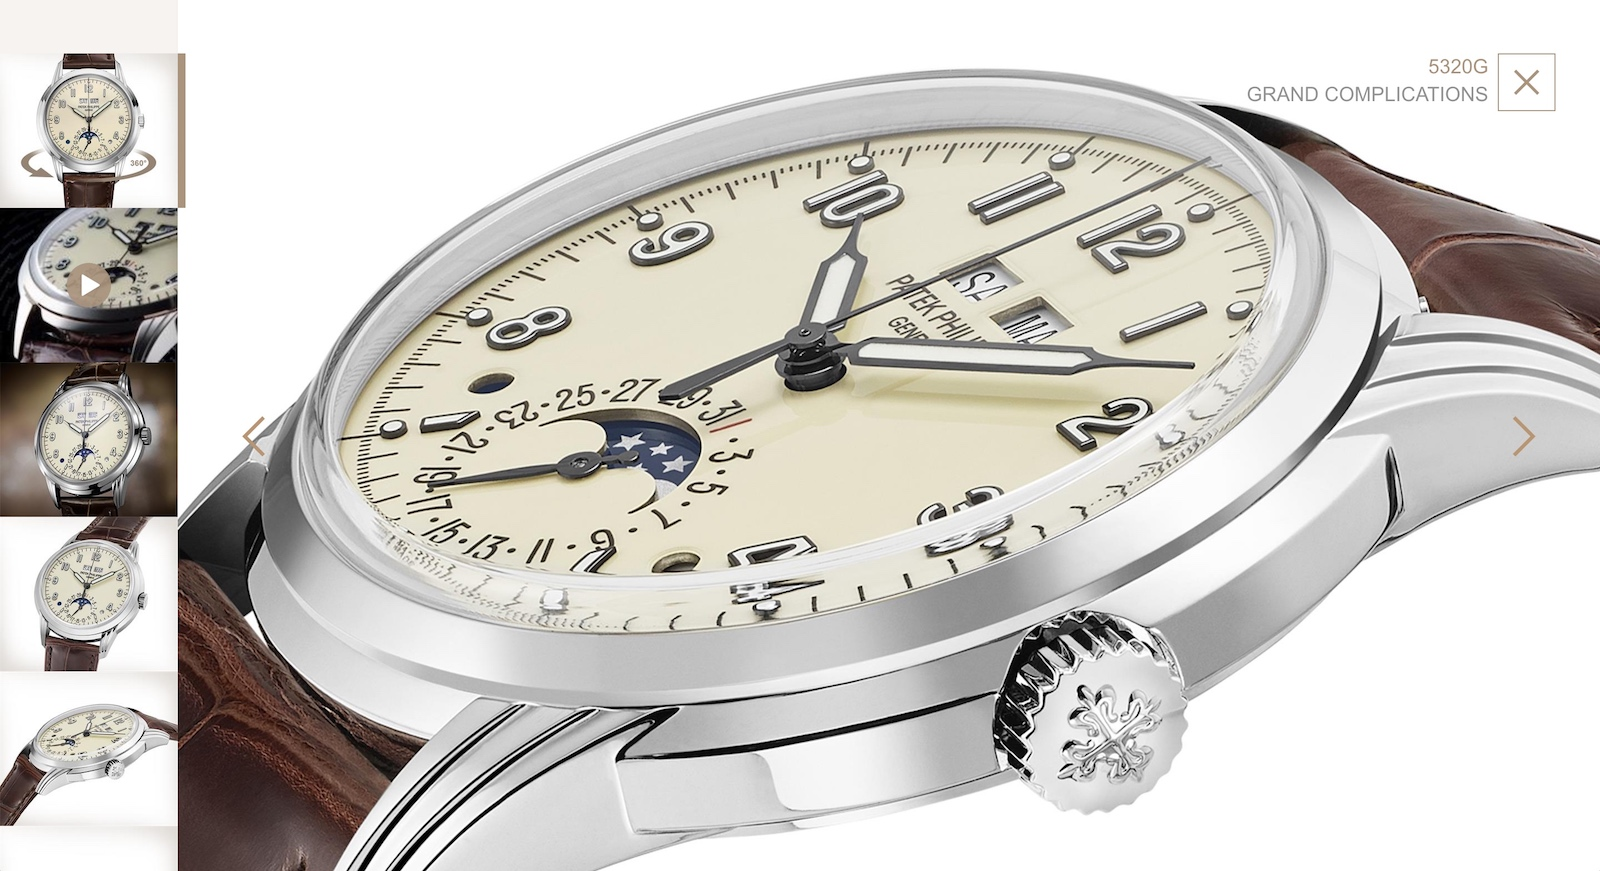 Nueva web de Patek Philippe - watch images zoom